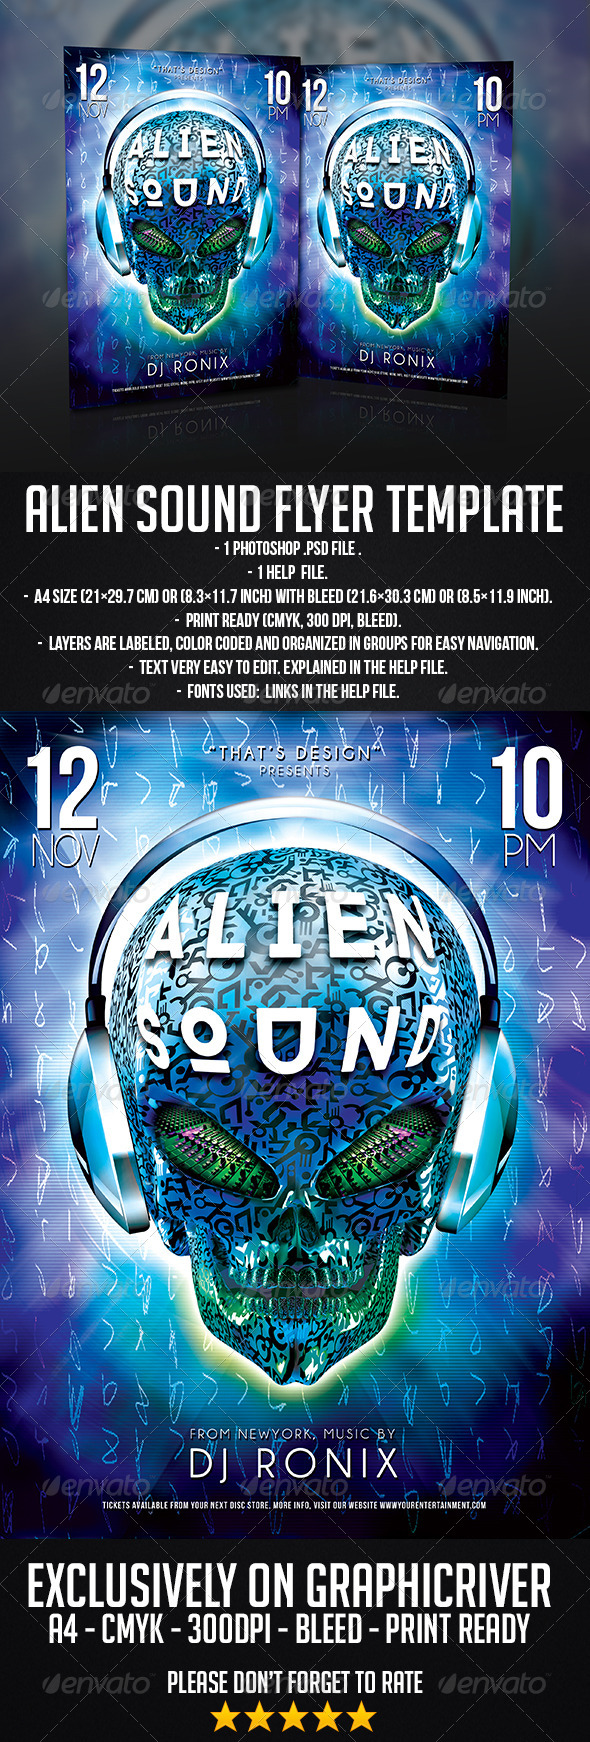 GraphicRiver Alien Sound Flyer Template 7154836